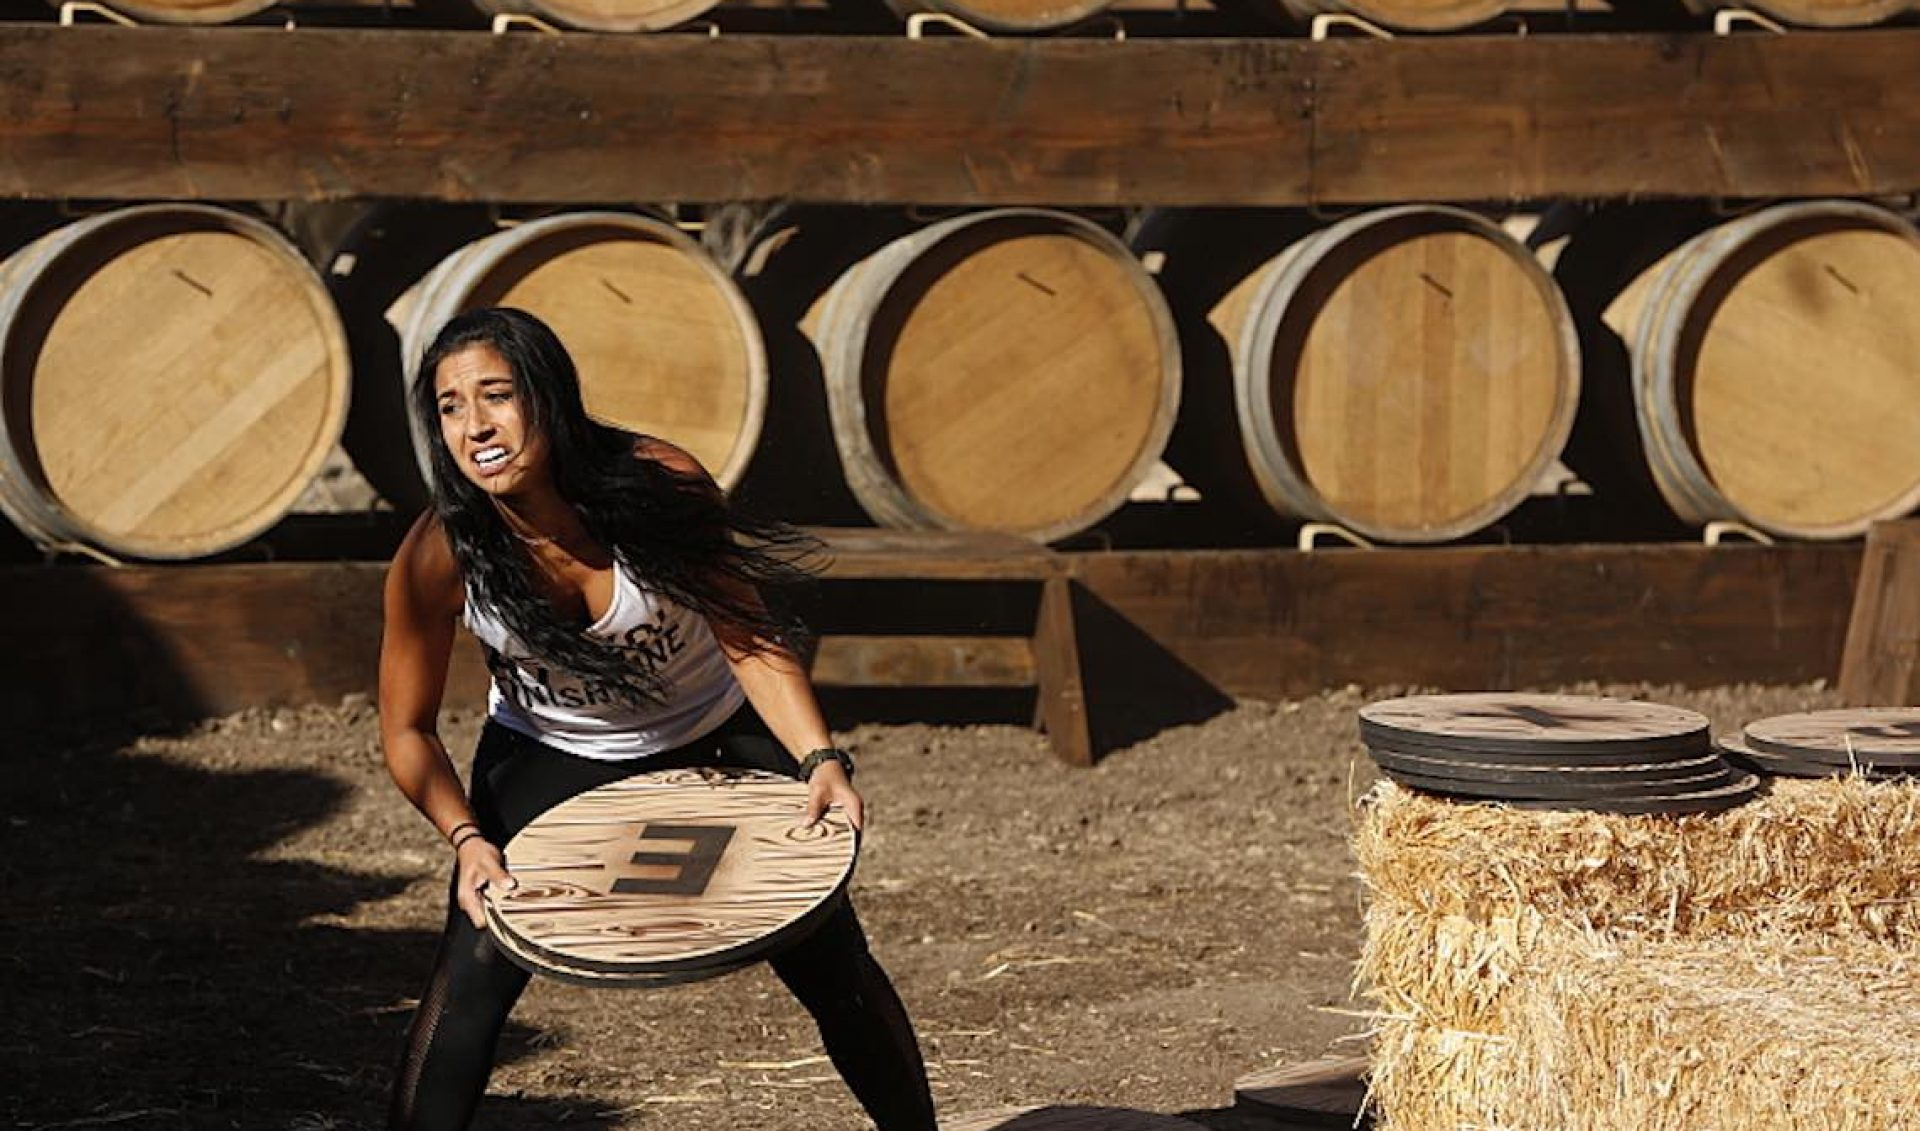 """'The Amazing Race' Season 28 Episode 12 Recap: """"The Only First That Matters"""""""